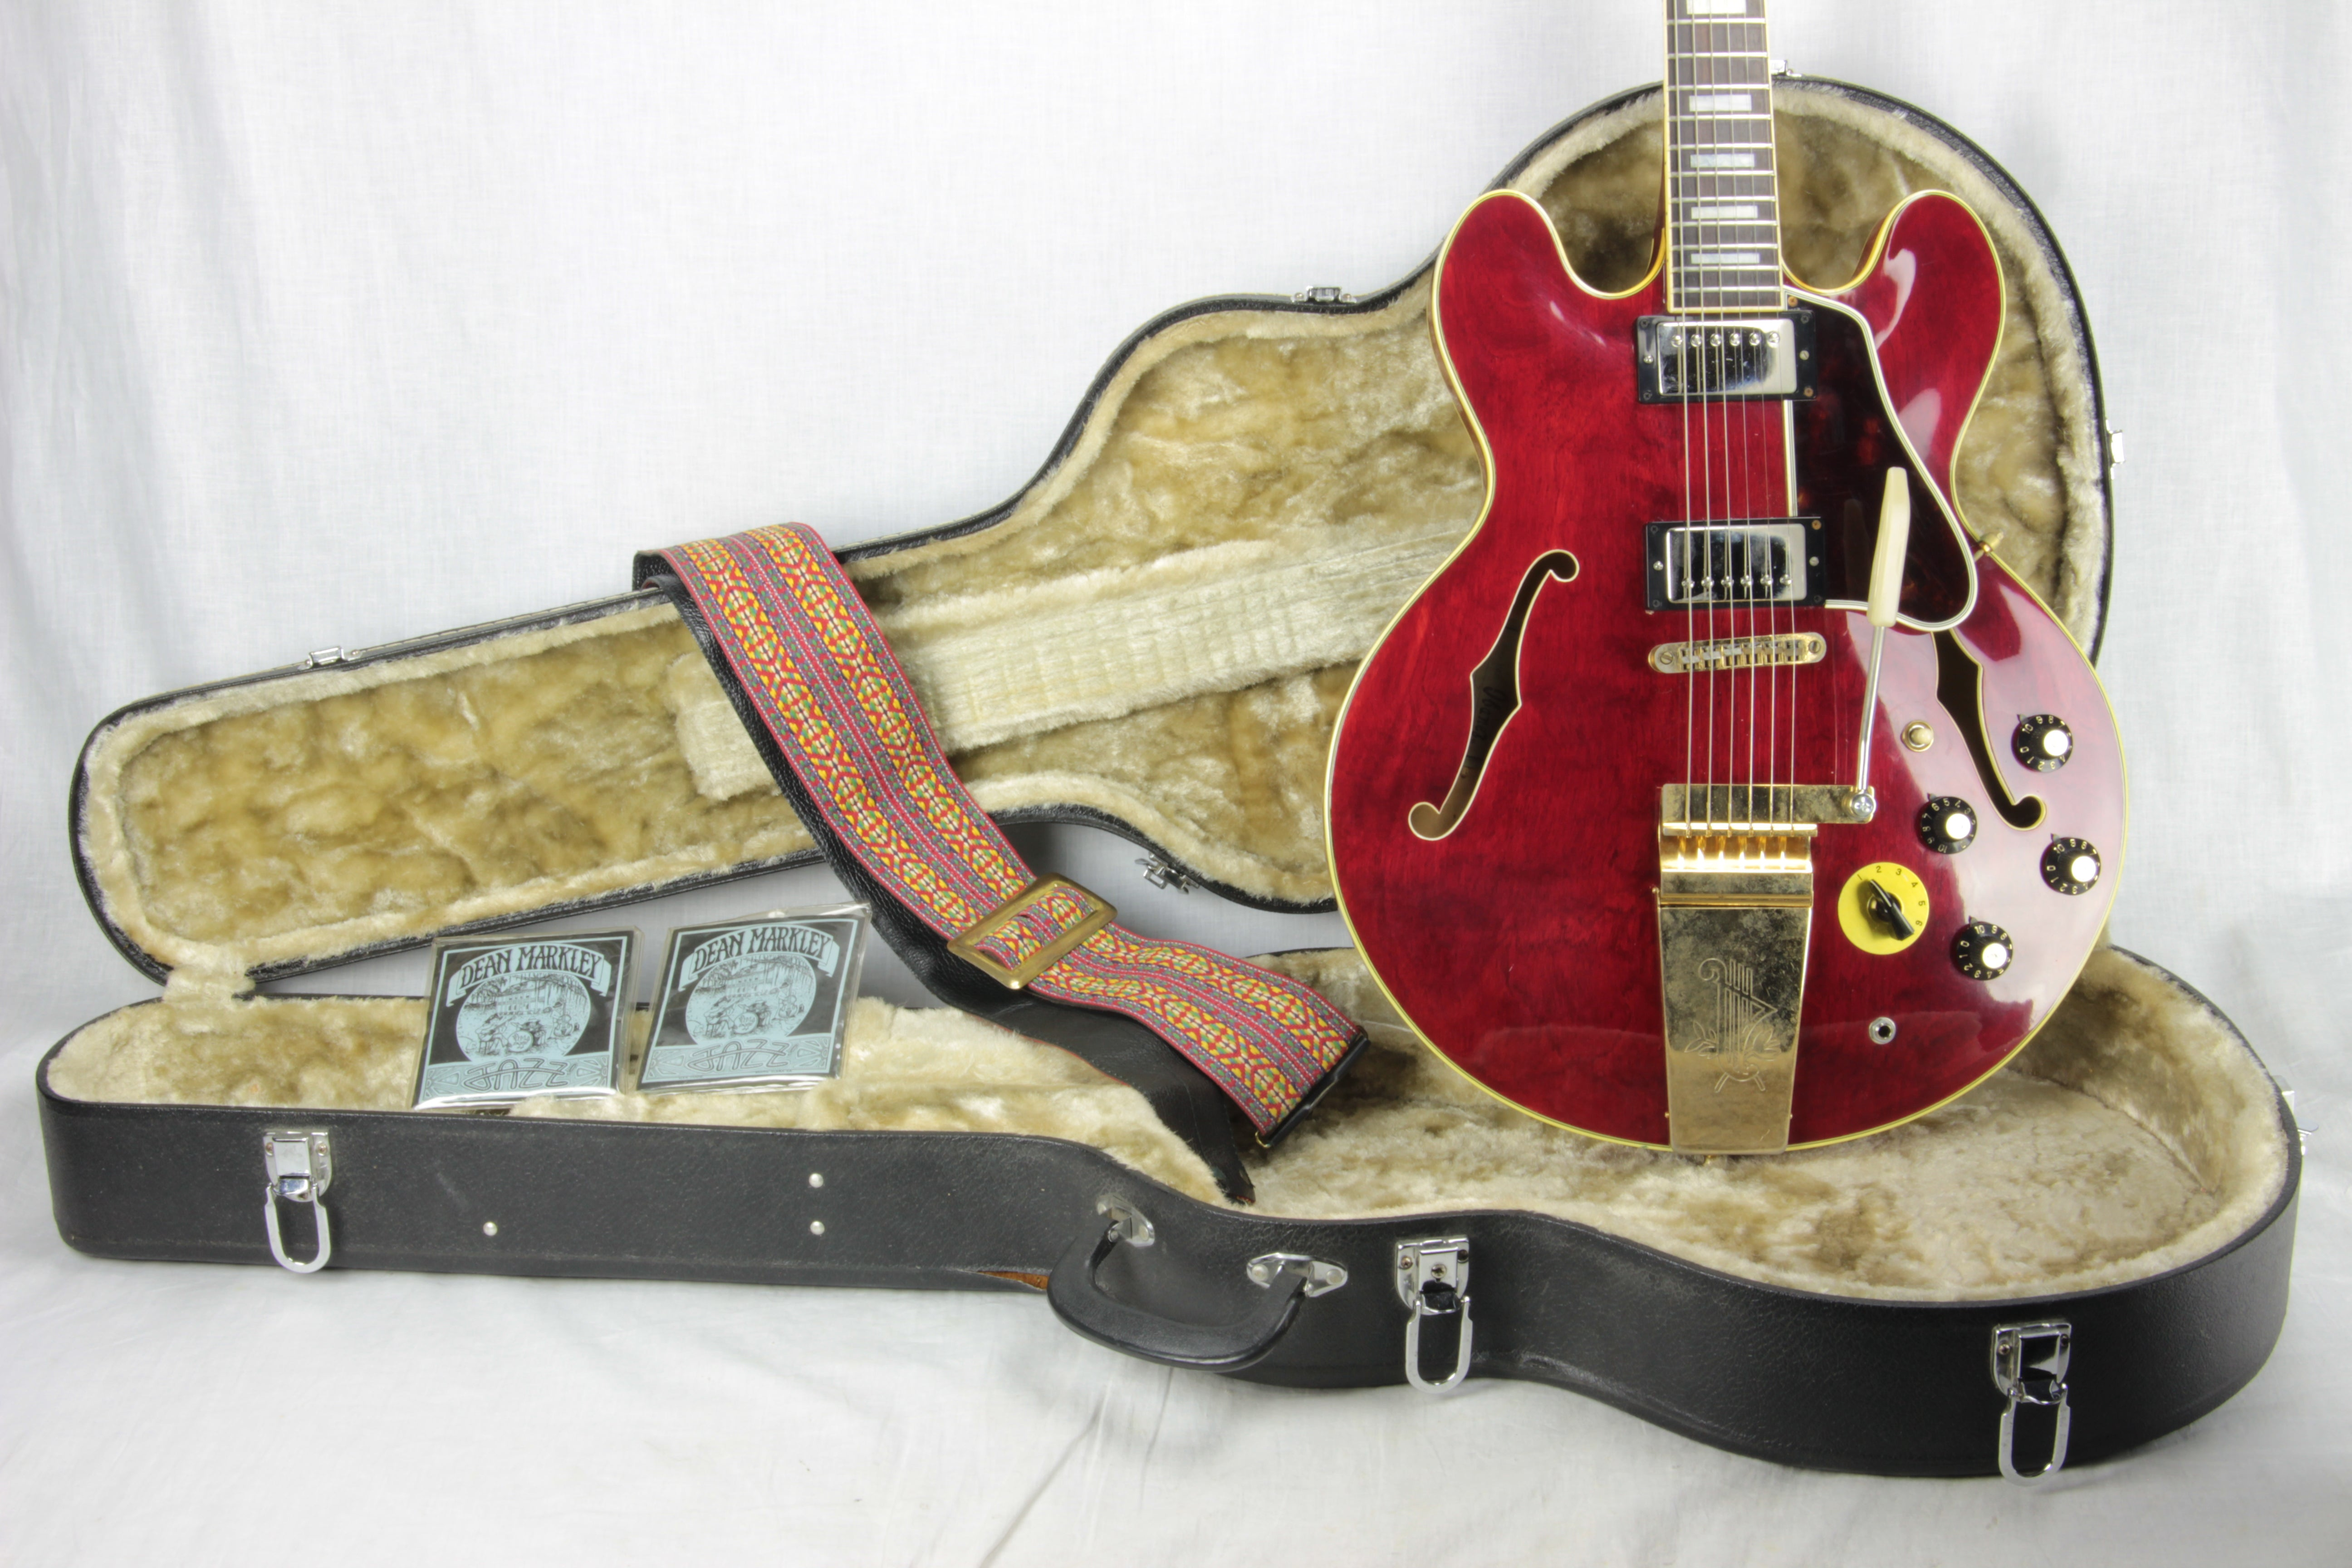 1977 Ibanez ES-355 TD Cherry Varisonic Stereo 2457 Lawsuit Era Seth Lover gibson japan